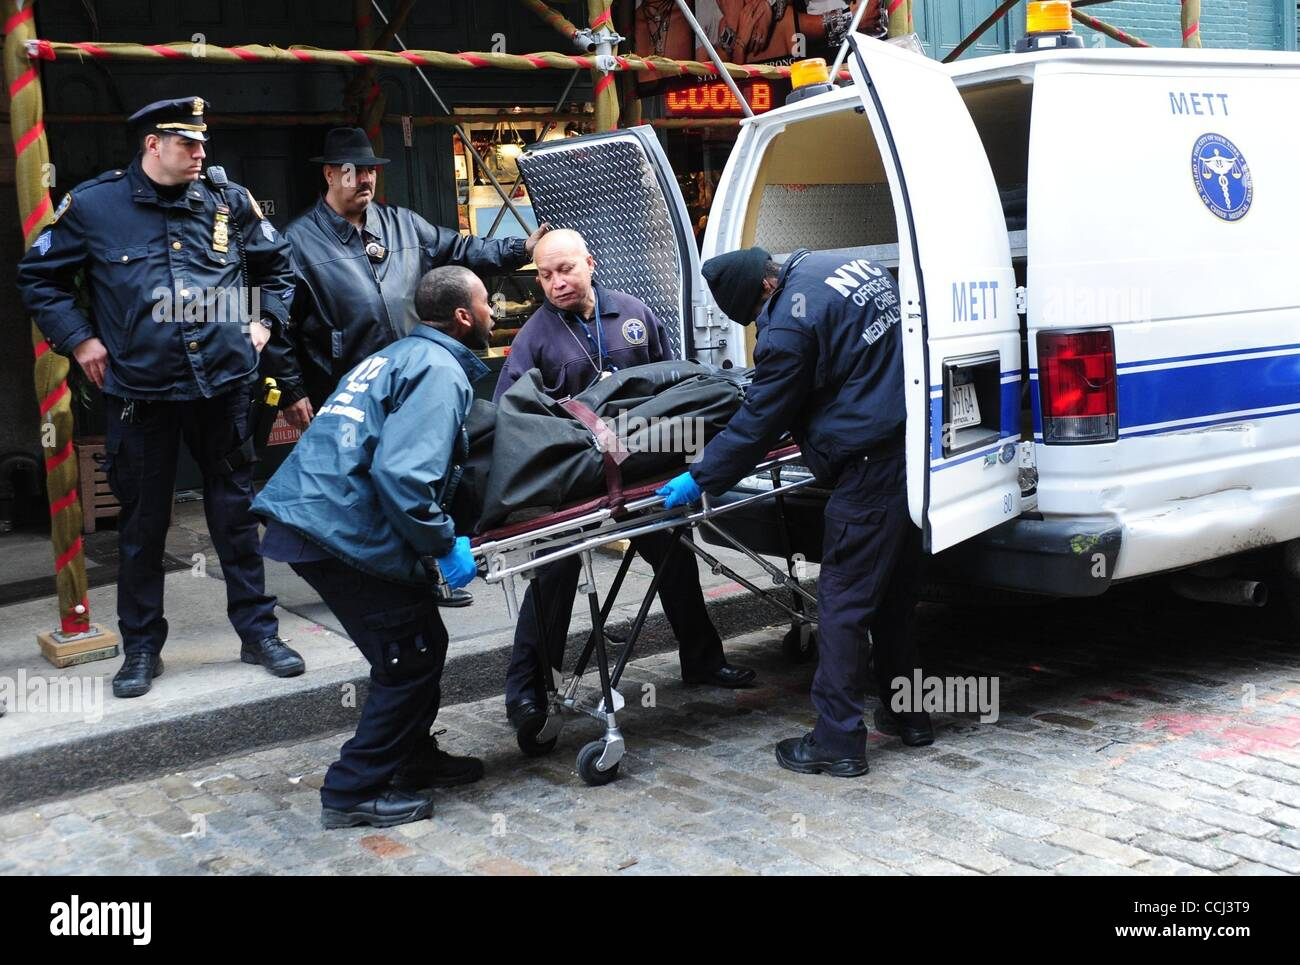 Dec. 11, 2010 - New York, New York, U.S. - NYPD, New Yopr Police Department, Crime Scene Unit arrives at the apartment - Stock Image